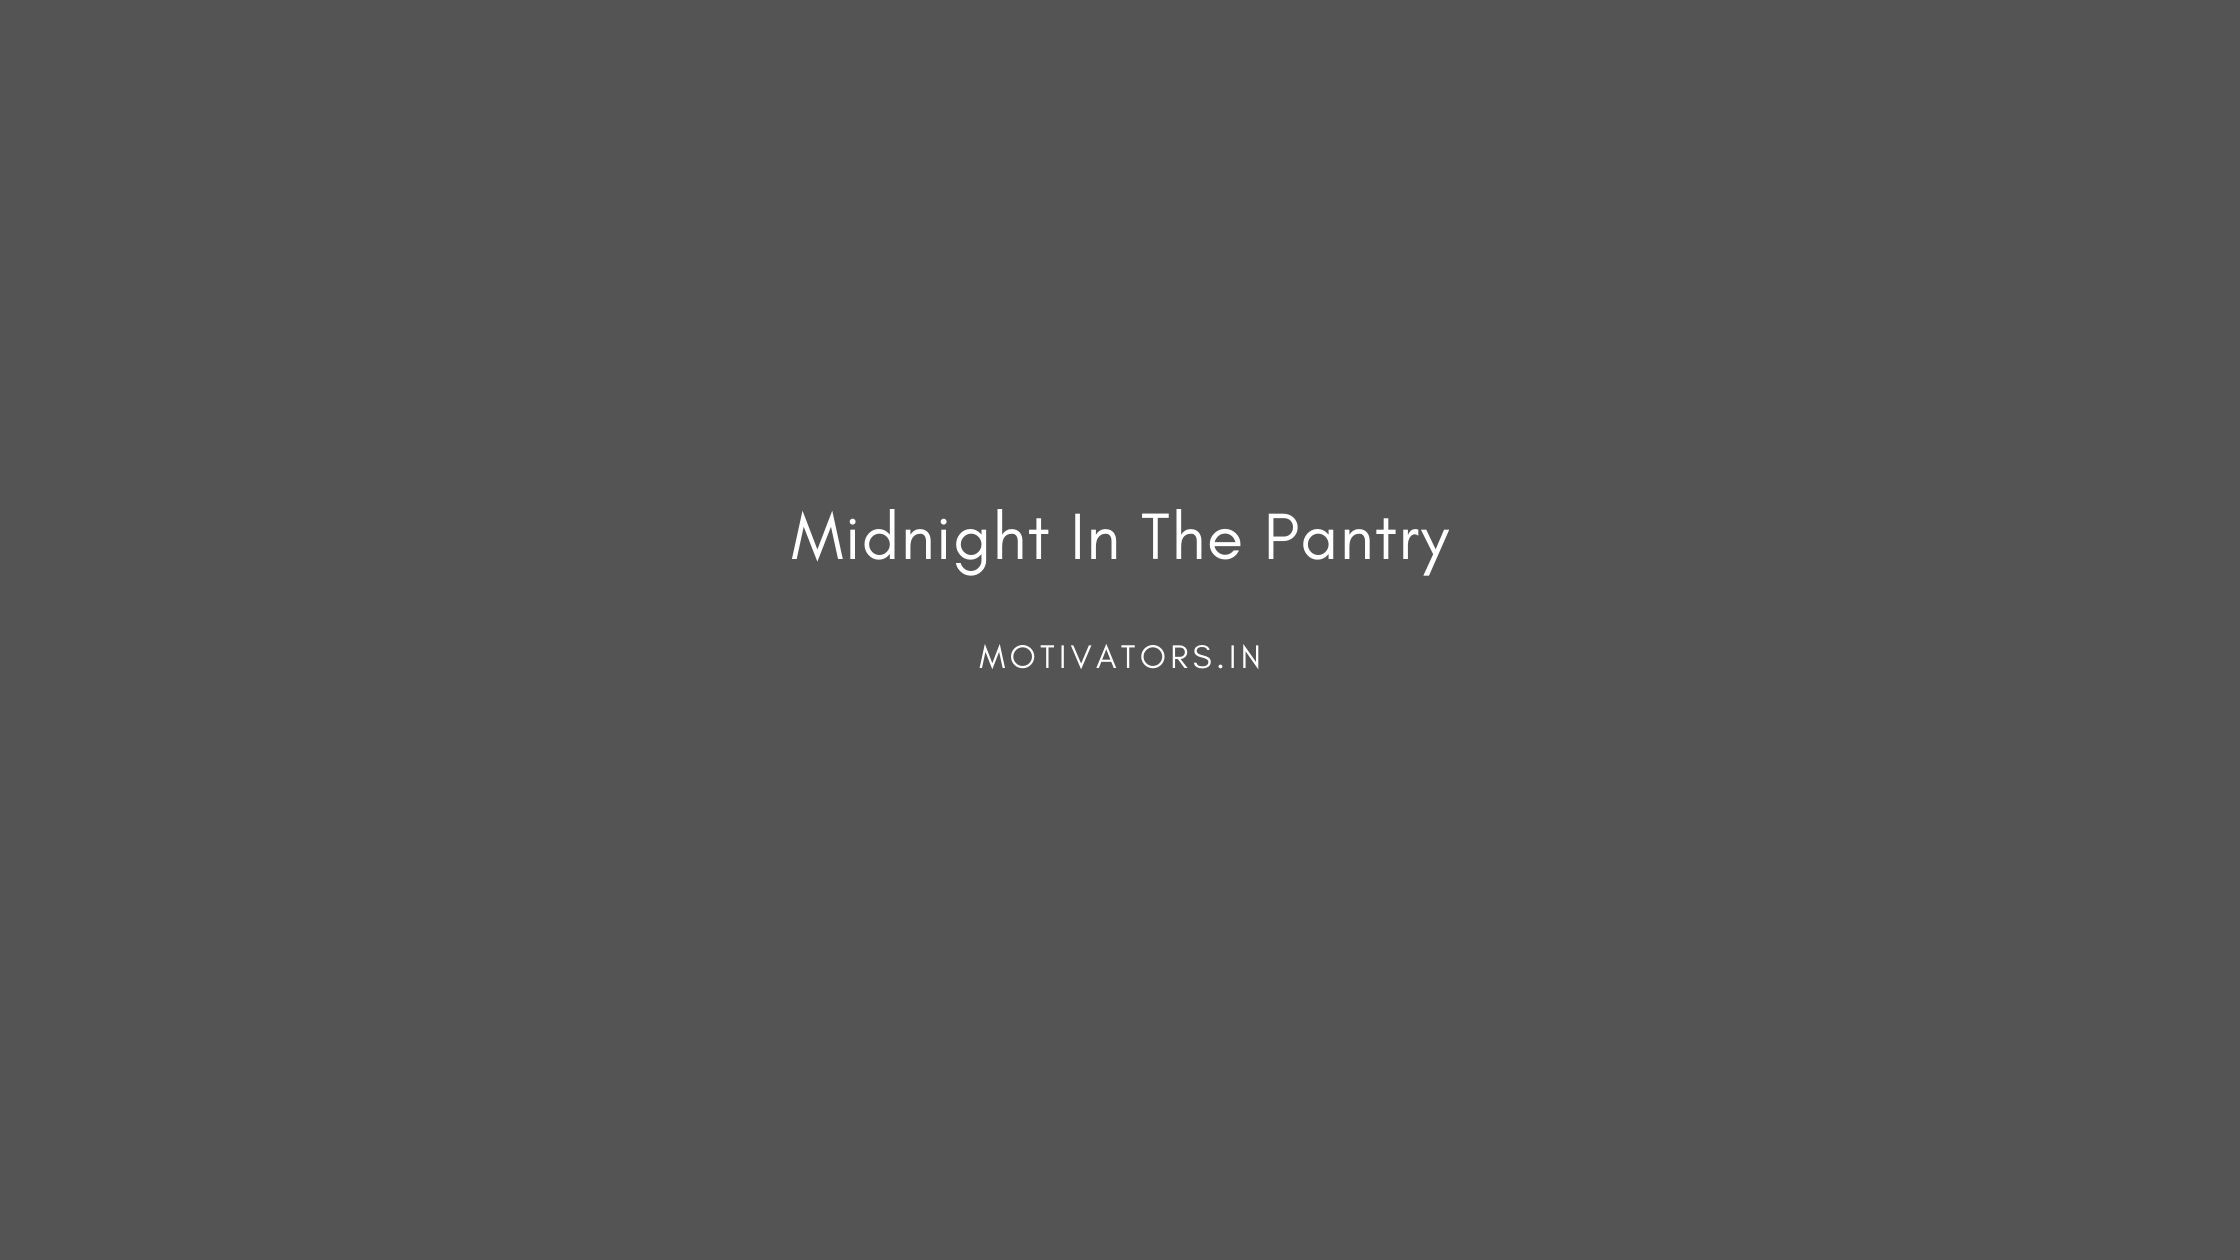 Midnight In The Pantry